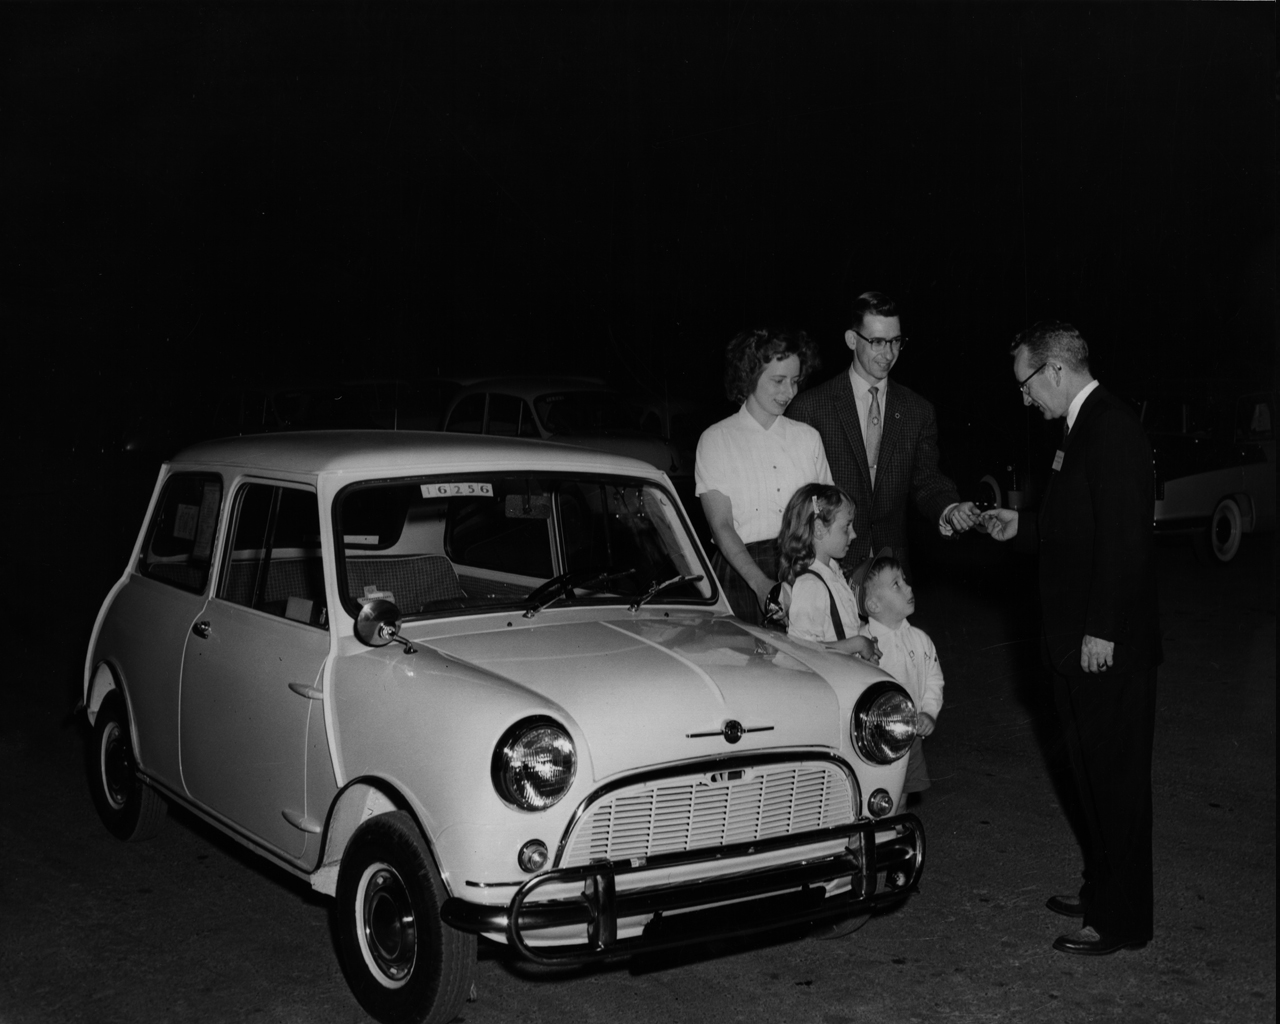 The first Morris Mini-Minor sold in Texas being delivered to a family in Arlington, Texas, in 1959.